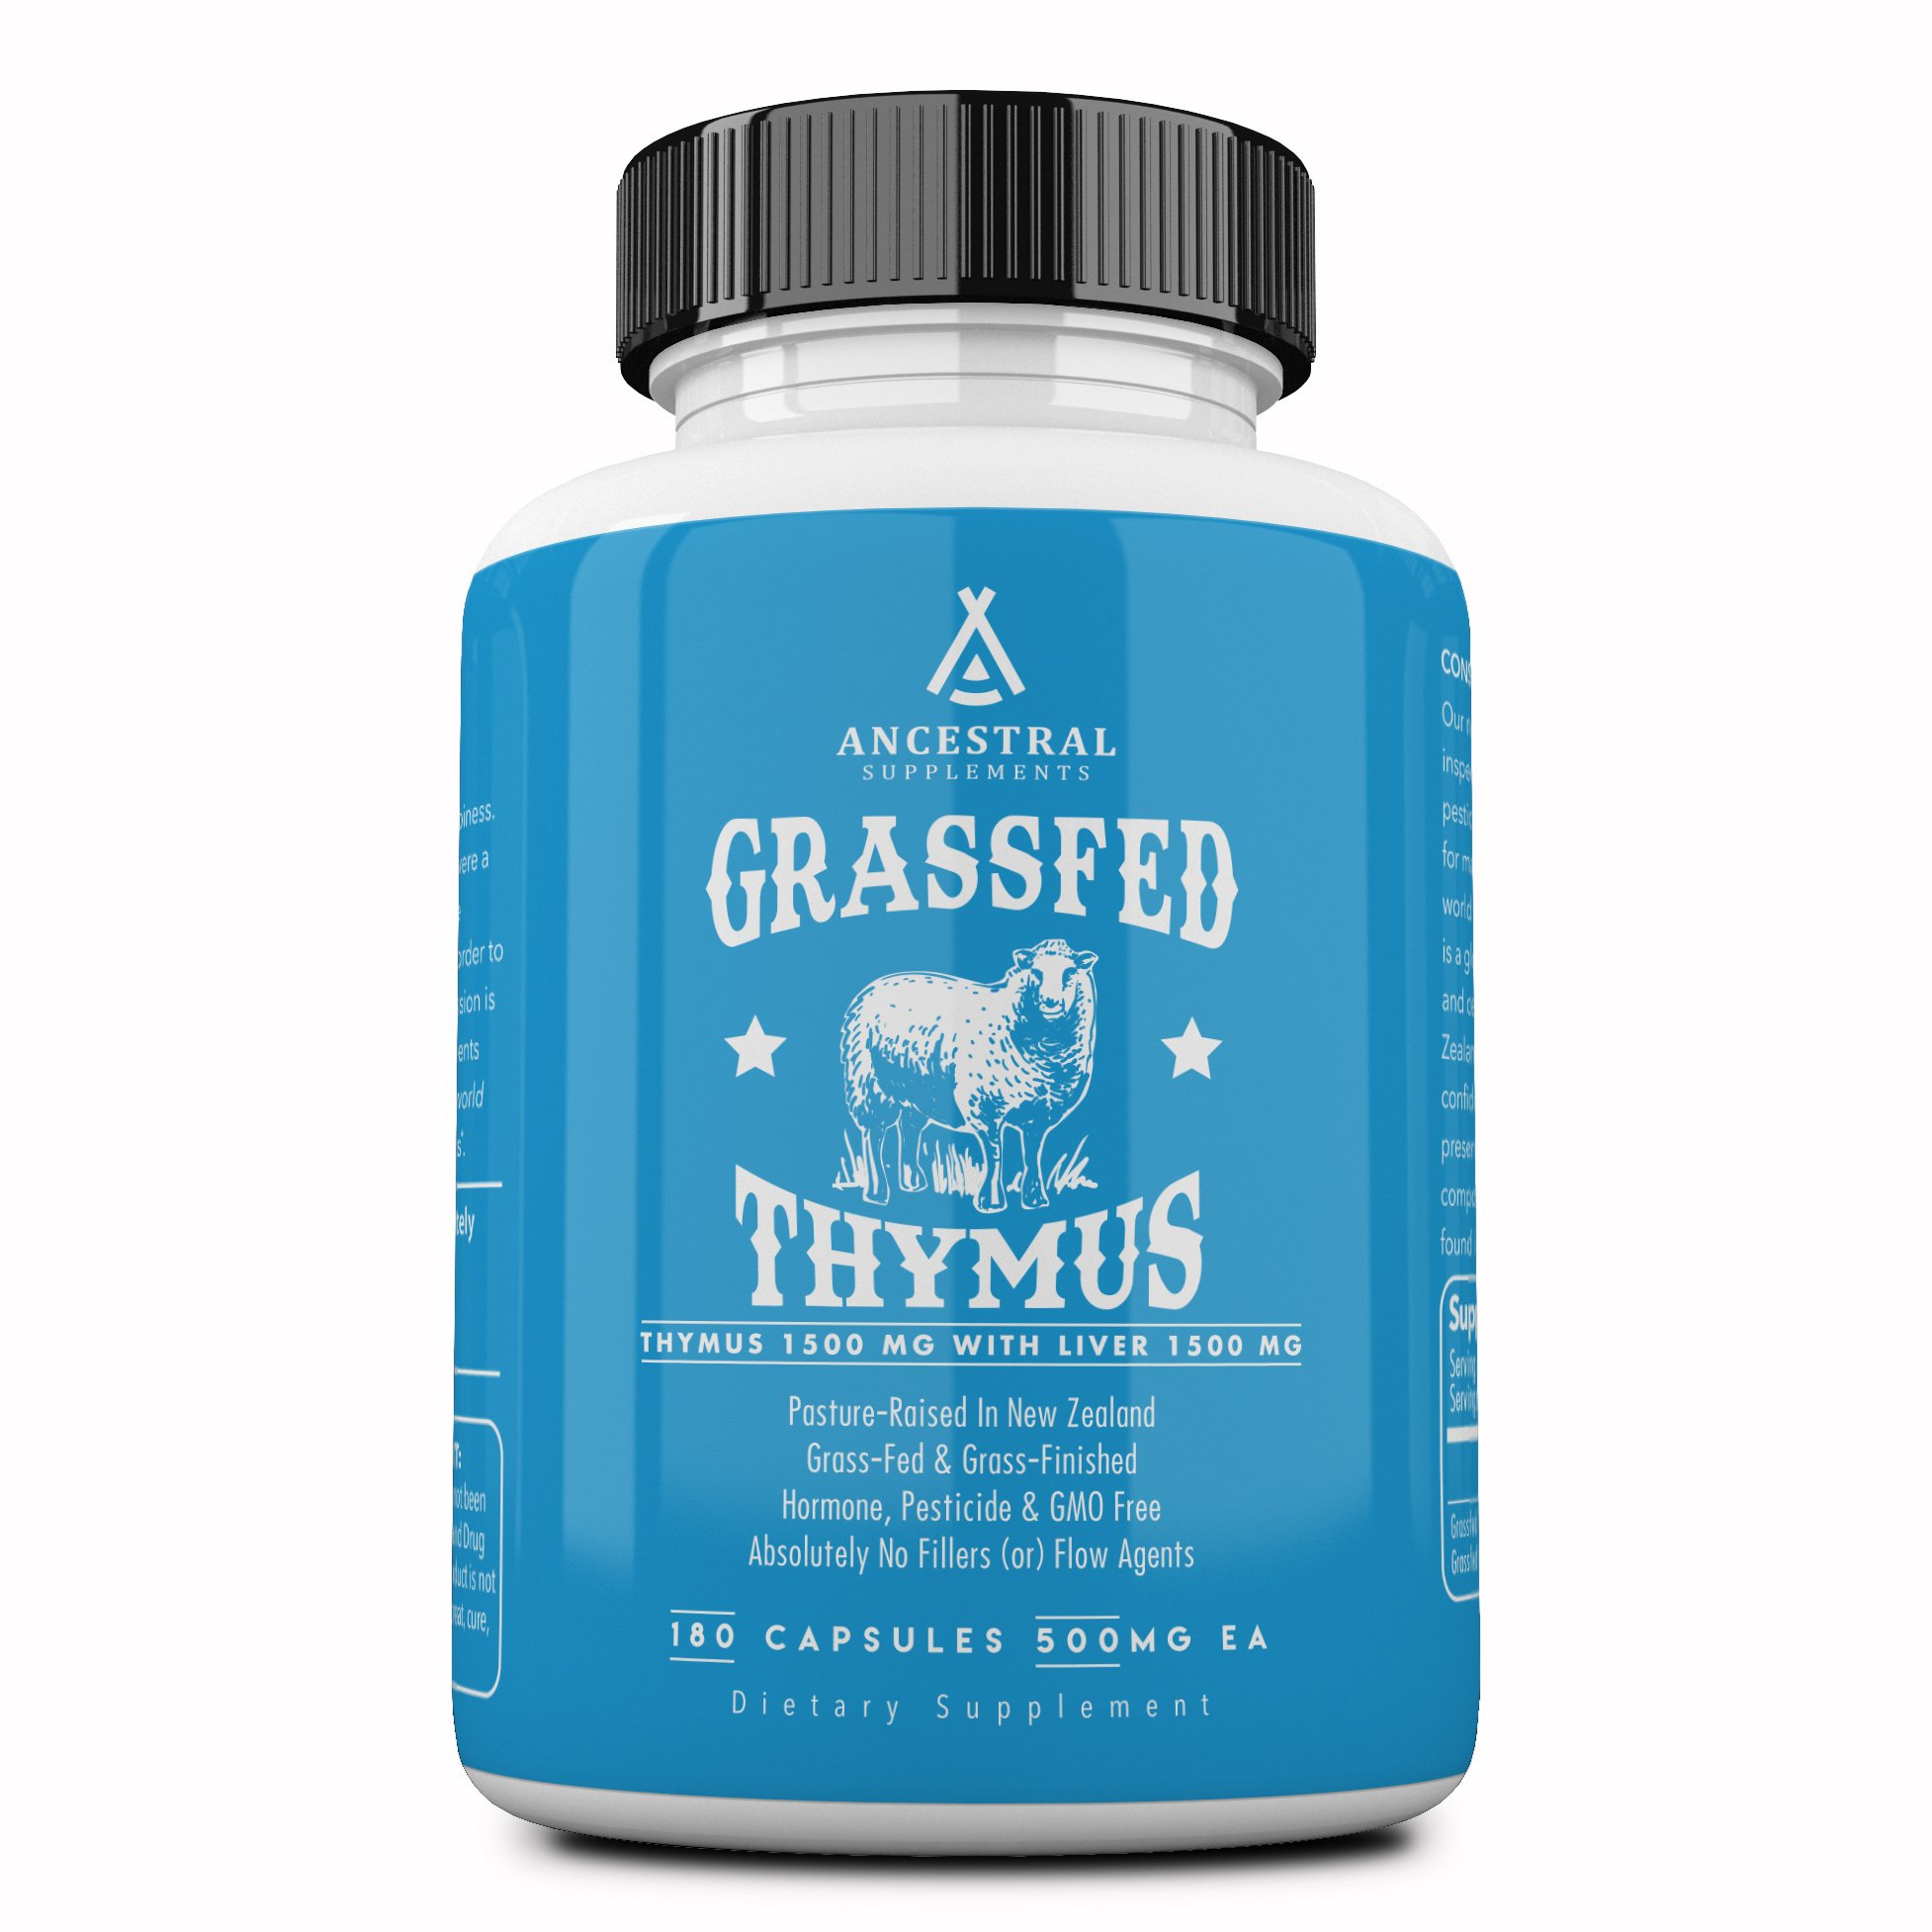 Ancestral Supplements Grass Fed Thymus Extract (Glandular) - Supports Immune, Histamine, Allergy Health (180 Capsules) by Ancestral Supplements